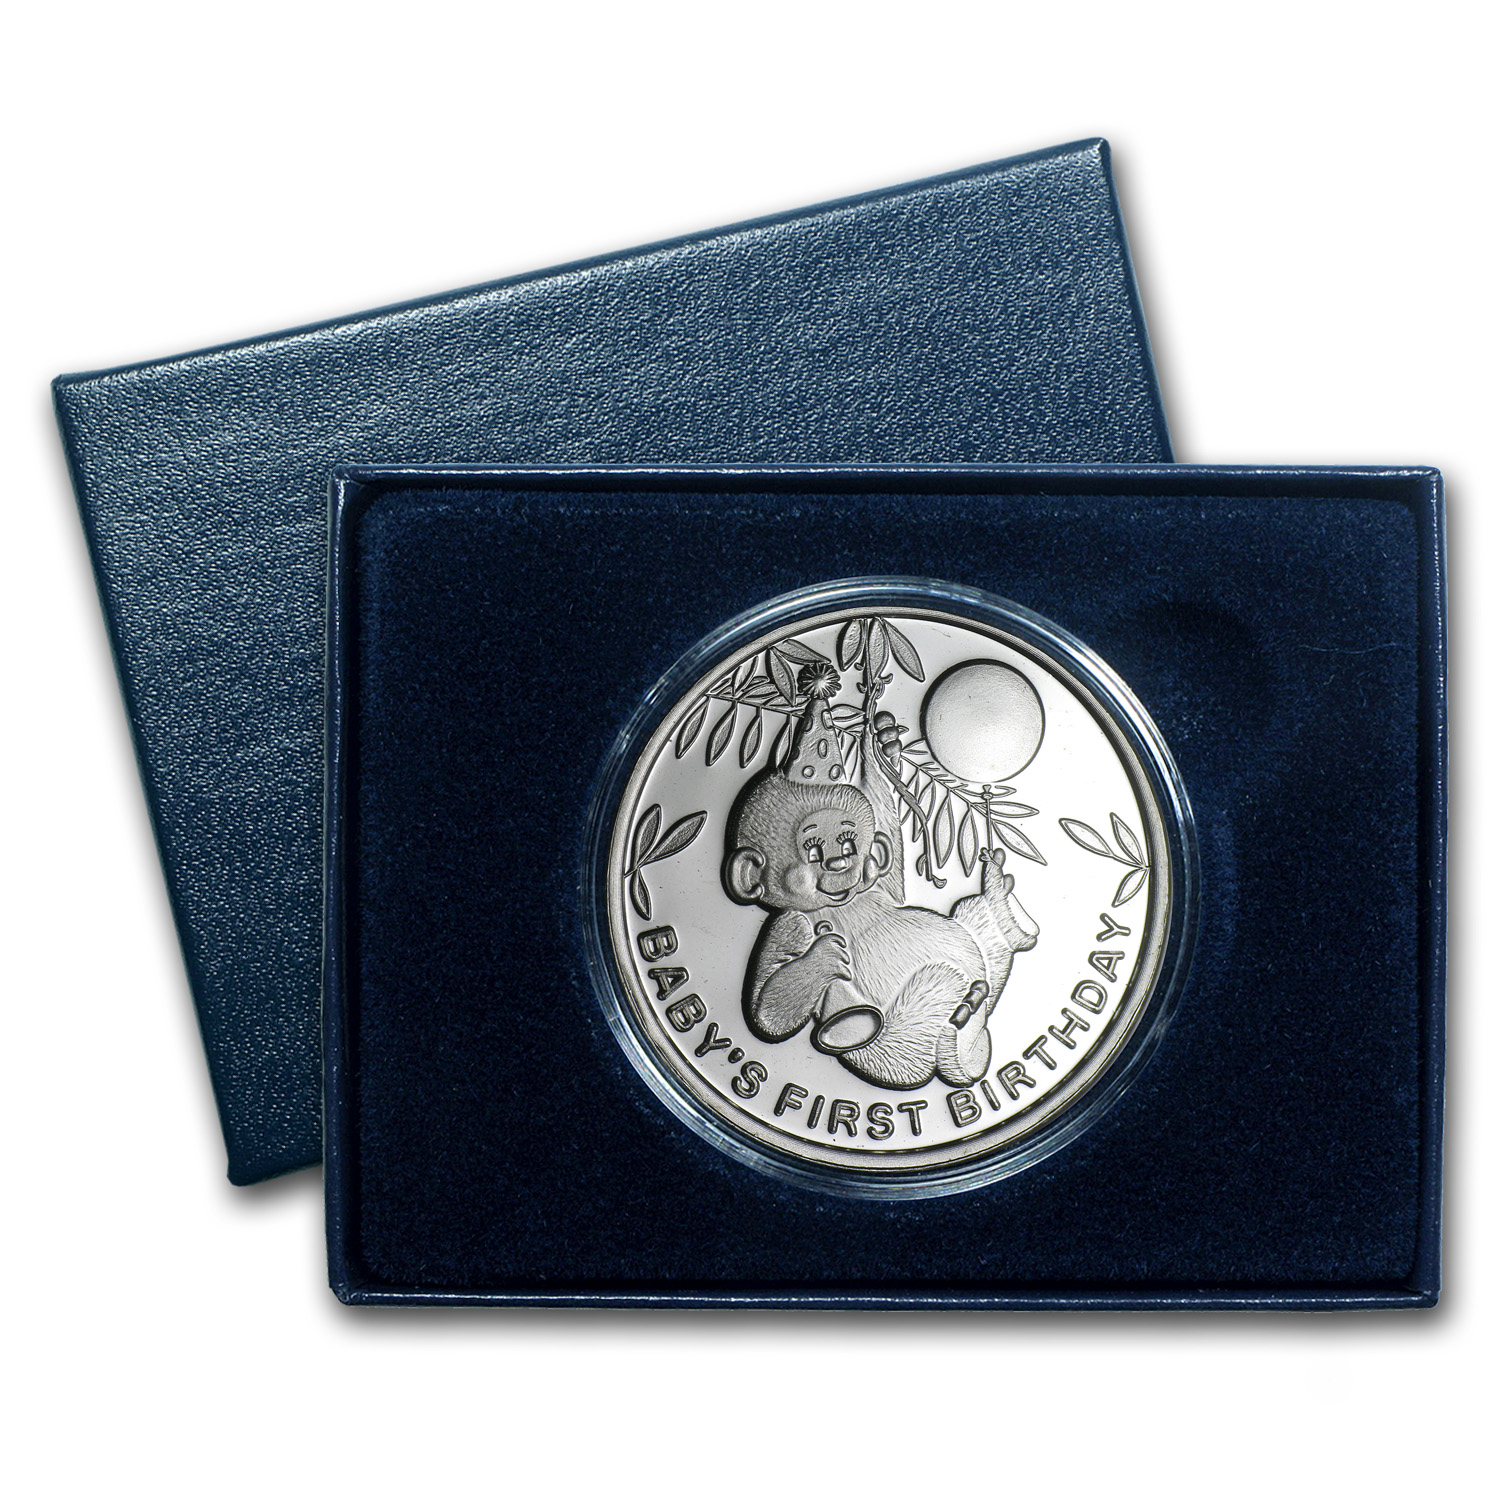 1 oz Silver Rounds - 2014 Baby's First Birthday (w/Box & Capsule)